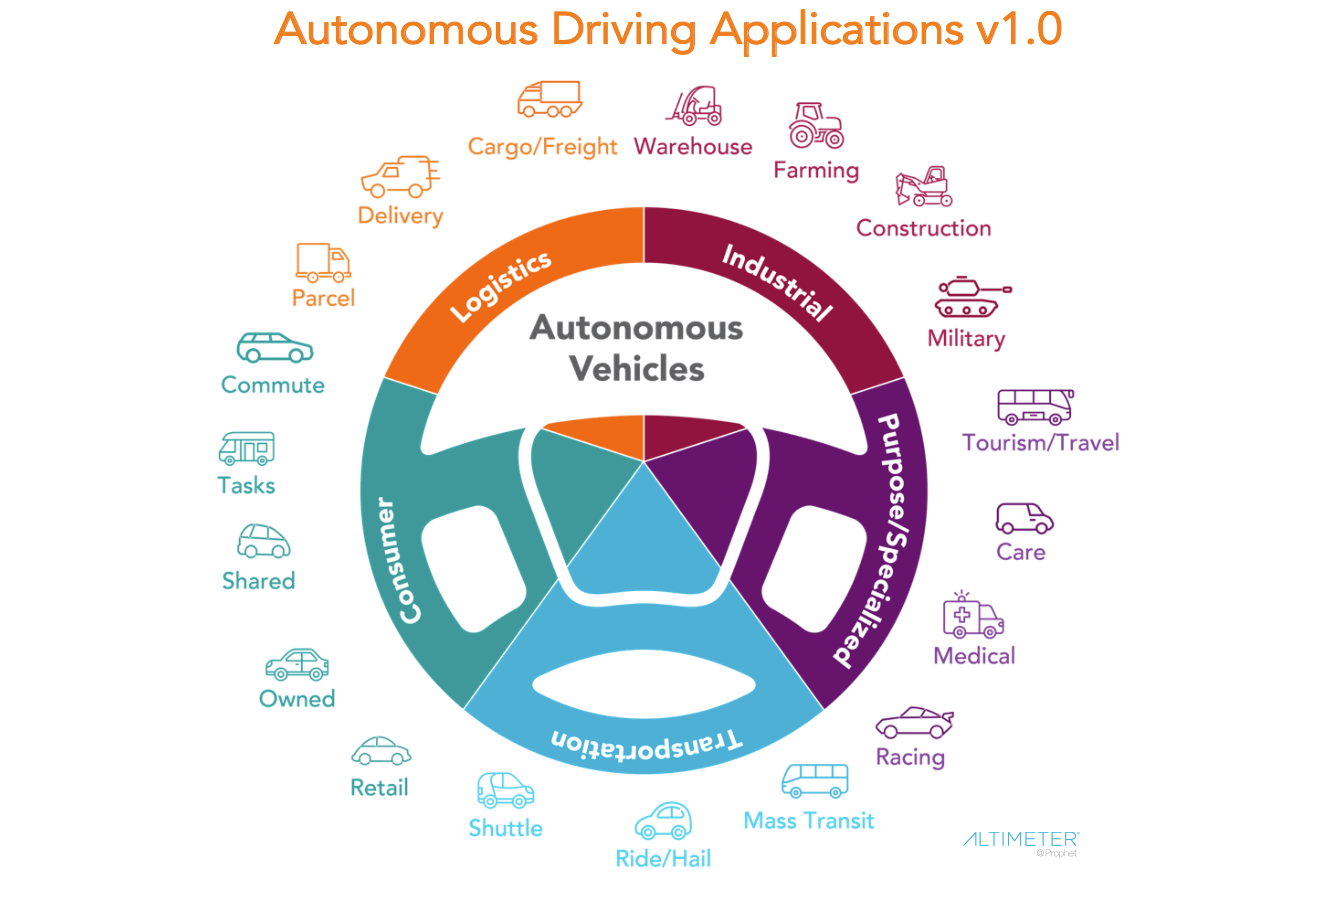 """Applications for autonomous driving, produced by Brian Solis for his """"Race to 2021"""" report."""